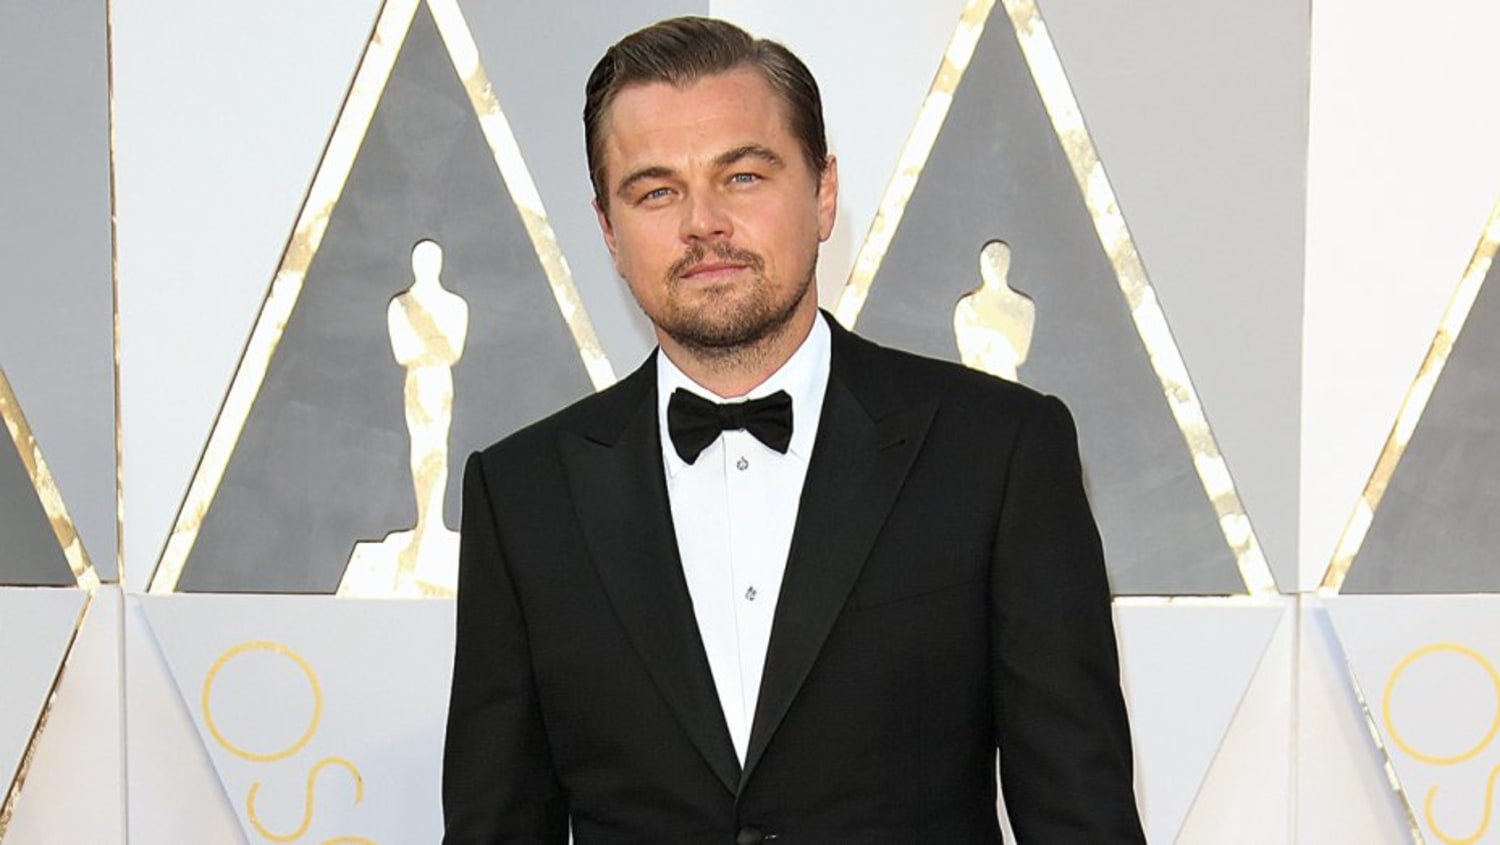 apple-tv-pads-its-star-studded-roster-signing-leonardo-dicaprio-s-appian-way-20200804-4